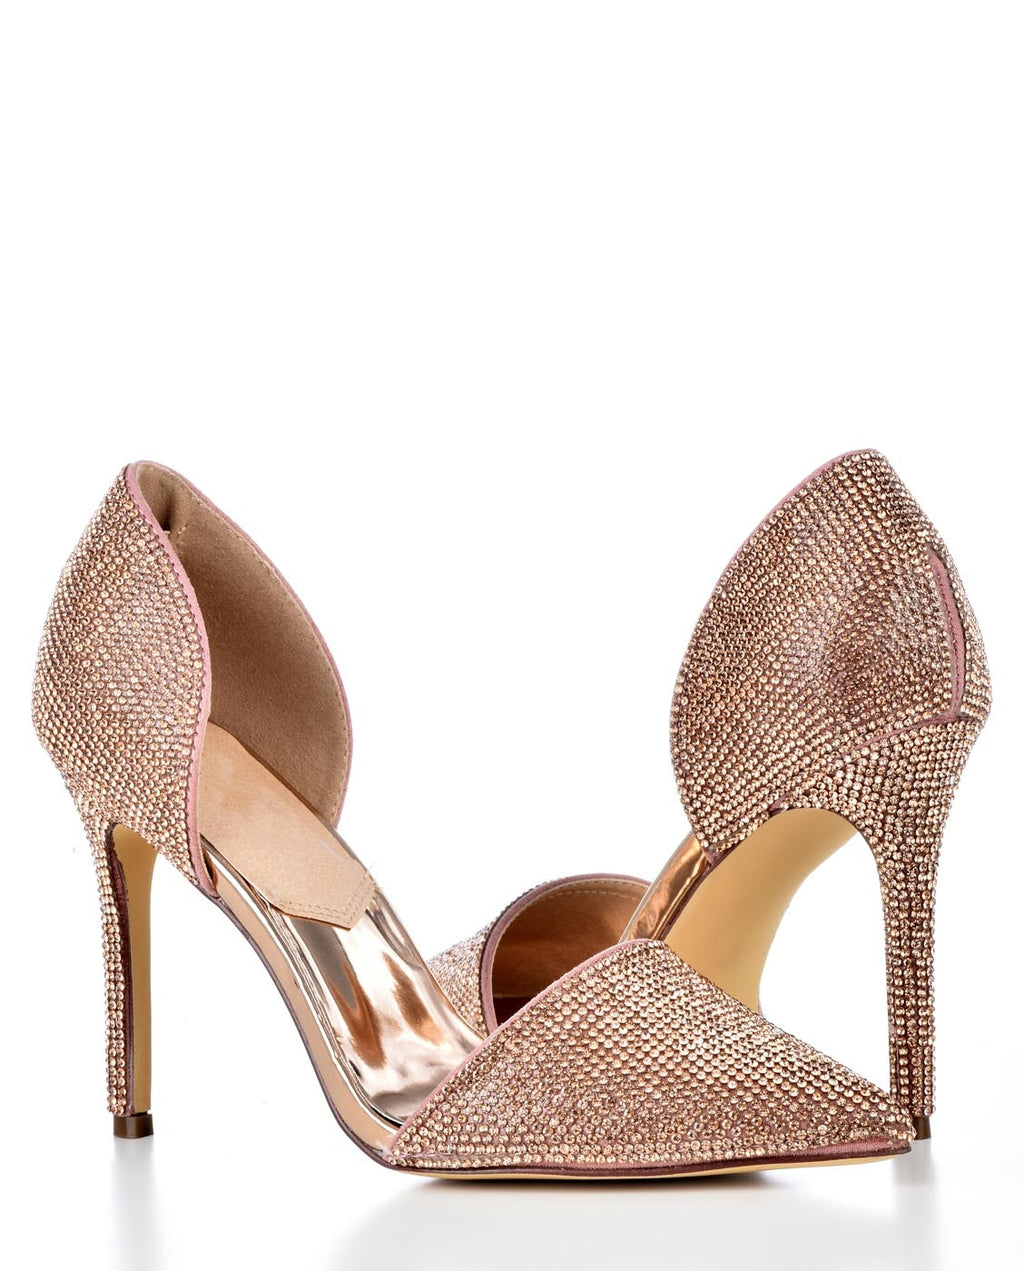 Point Toe D'orsay Pump with Rhinestones - Fashion You Up